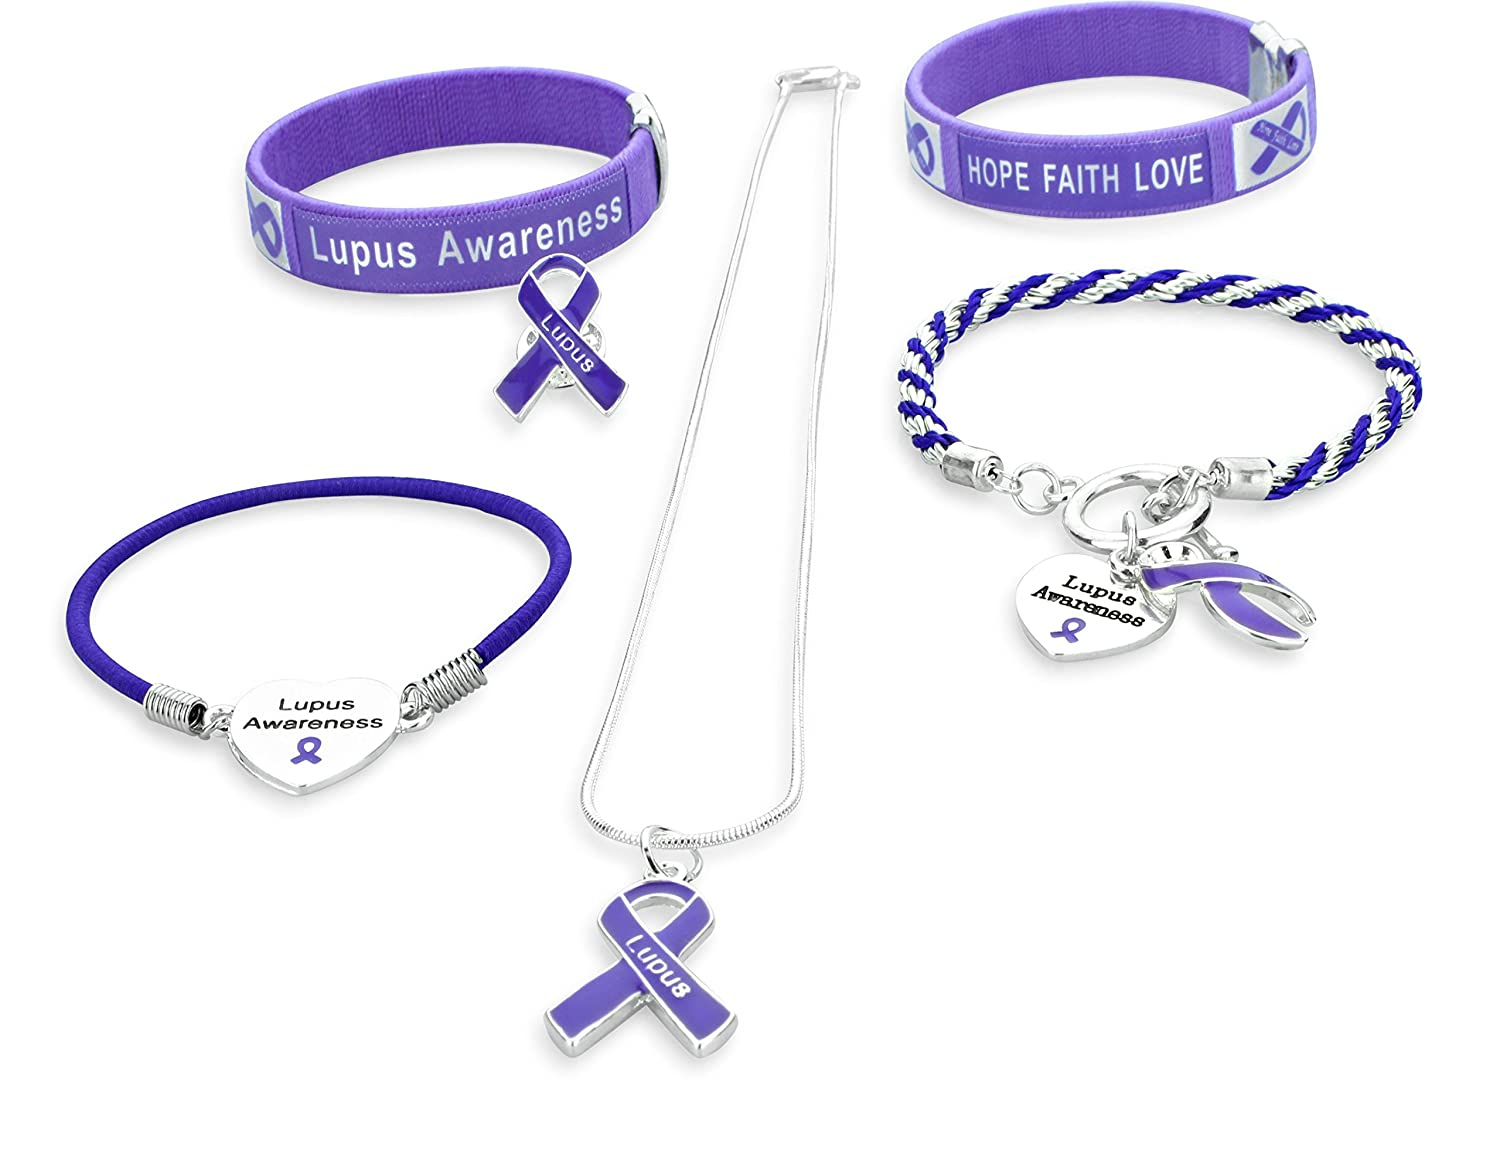 Amazon Lupus Awareness Jewelry Gift Set 6 Items Includes 2